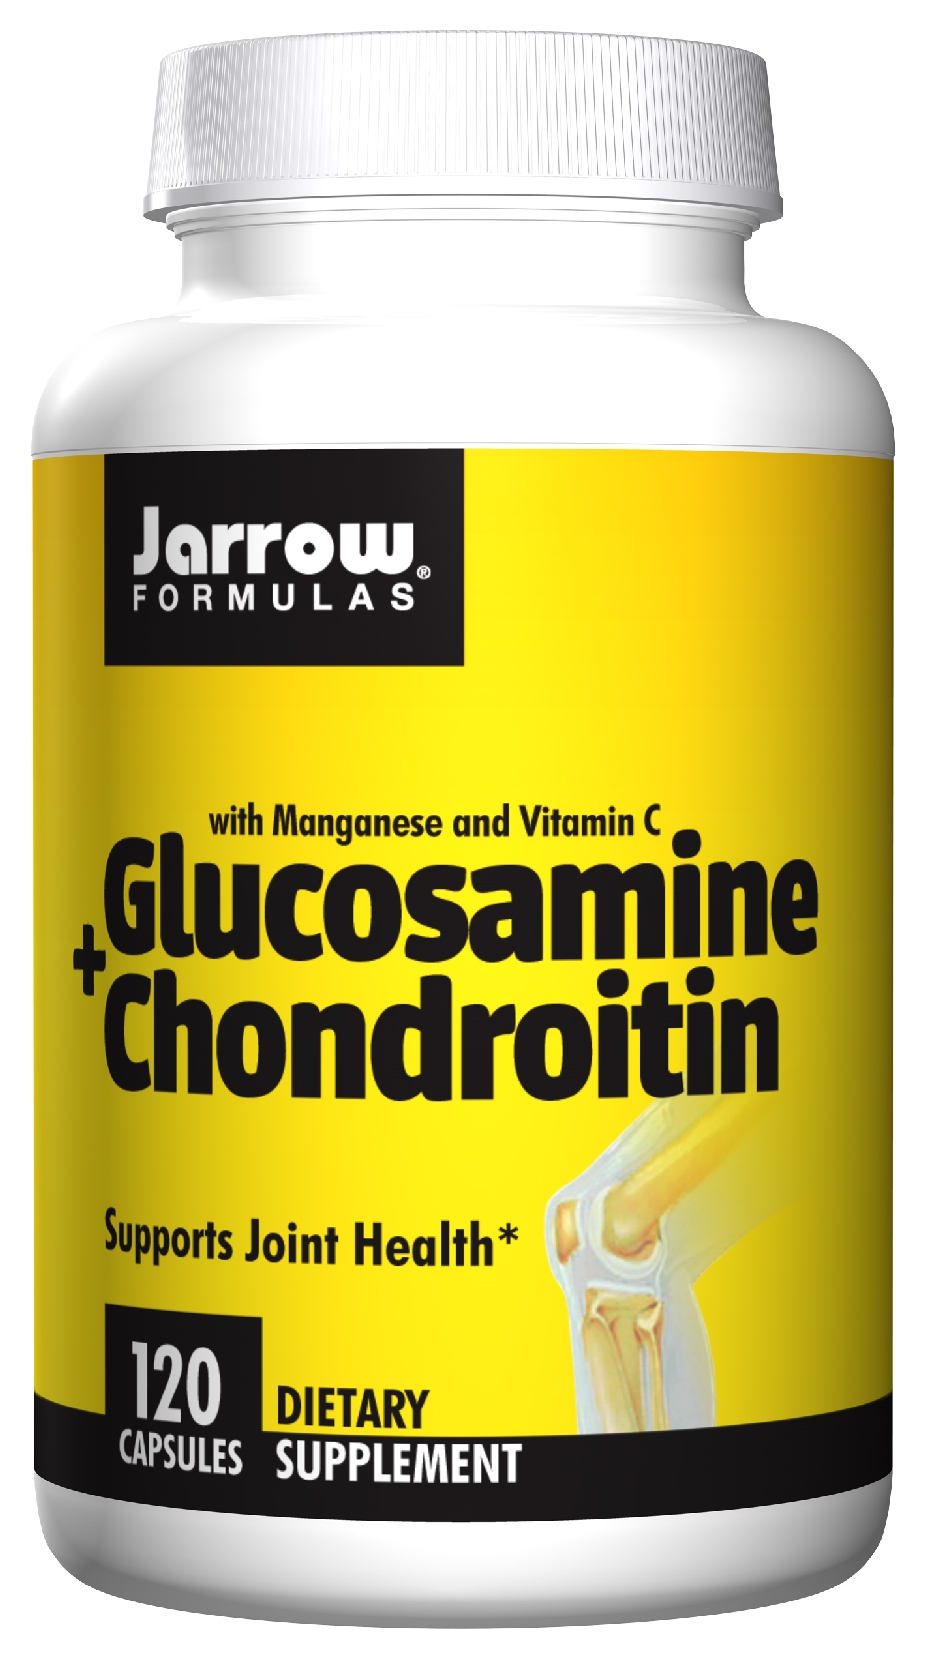 Glucosamine + Chondroitin Combination 120 caps by Jarrow Formulas